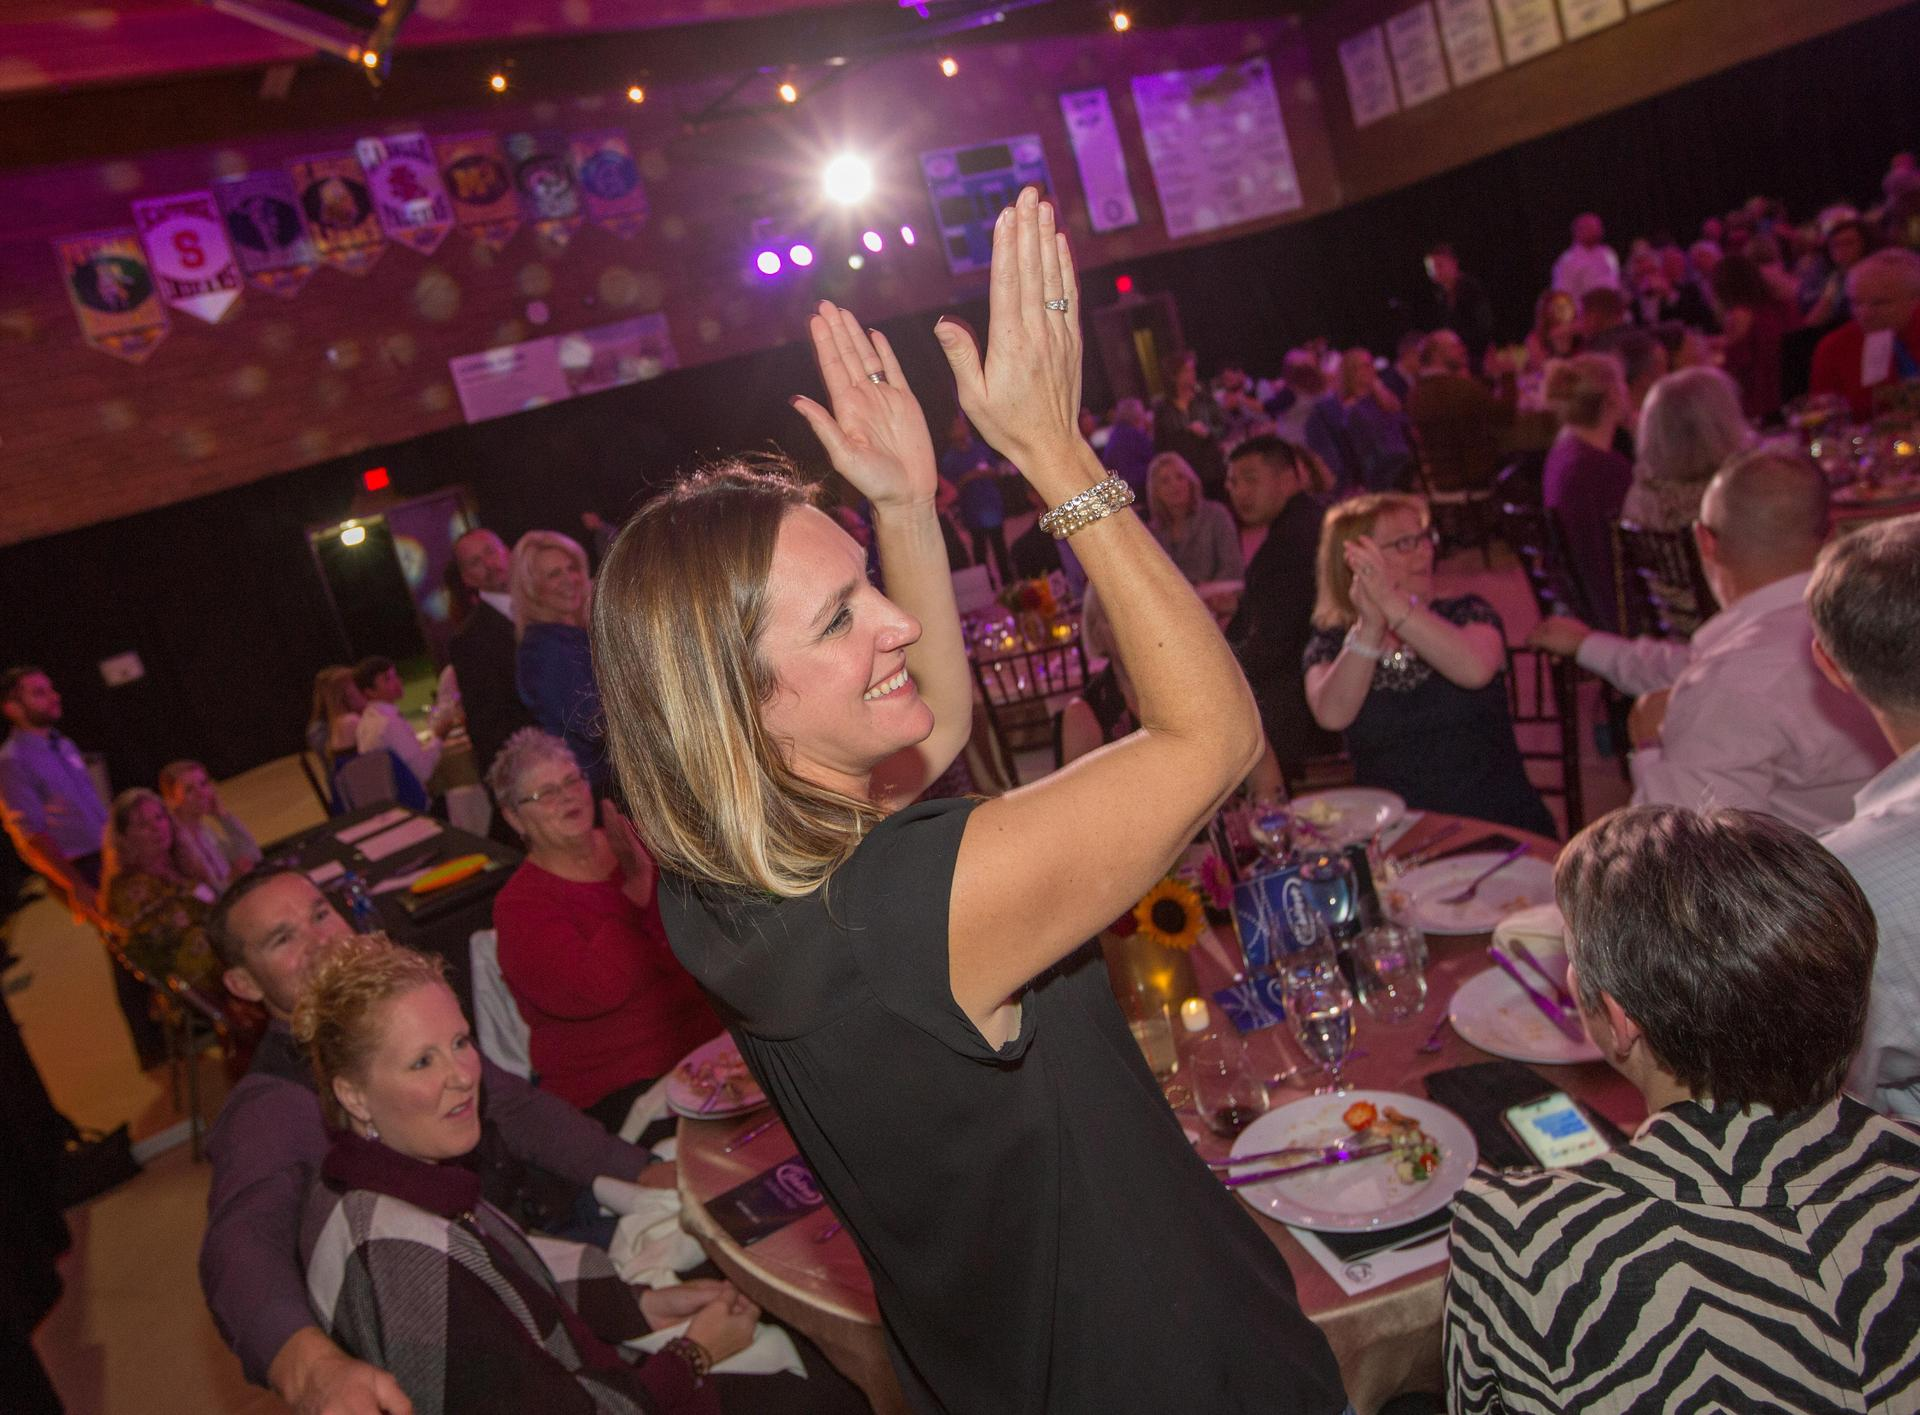 woman claps at event